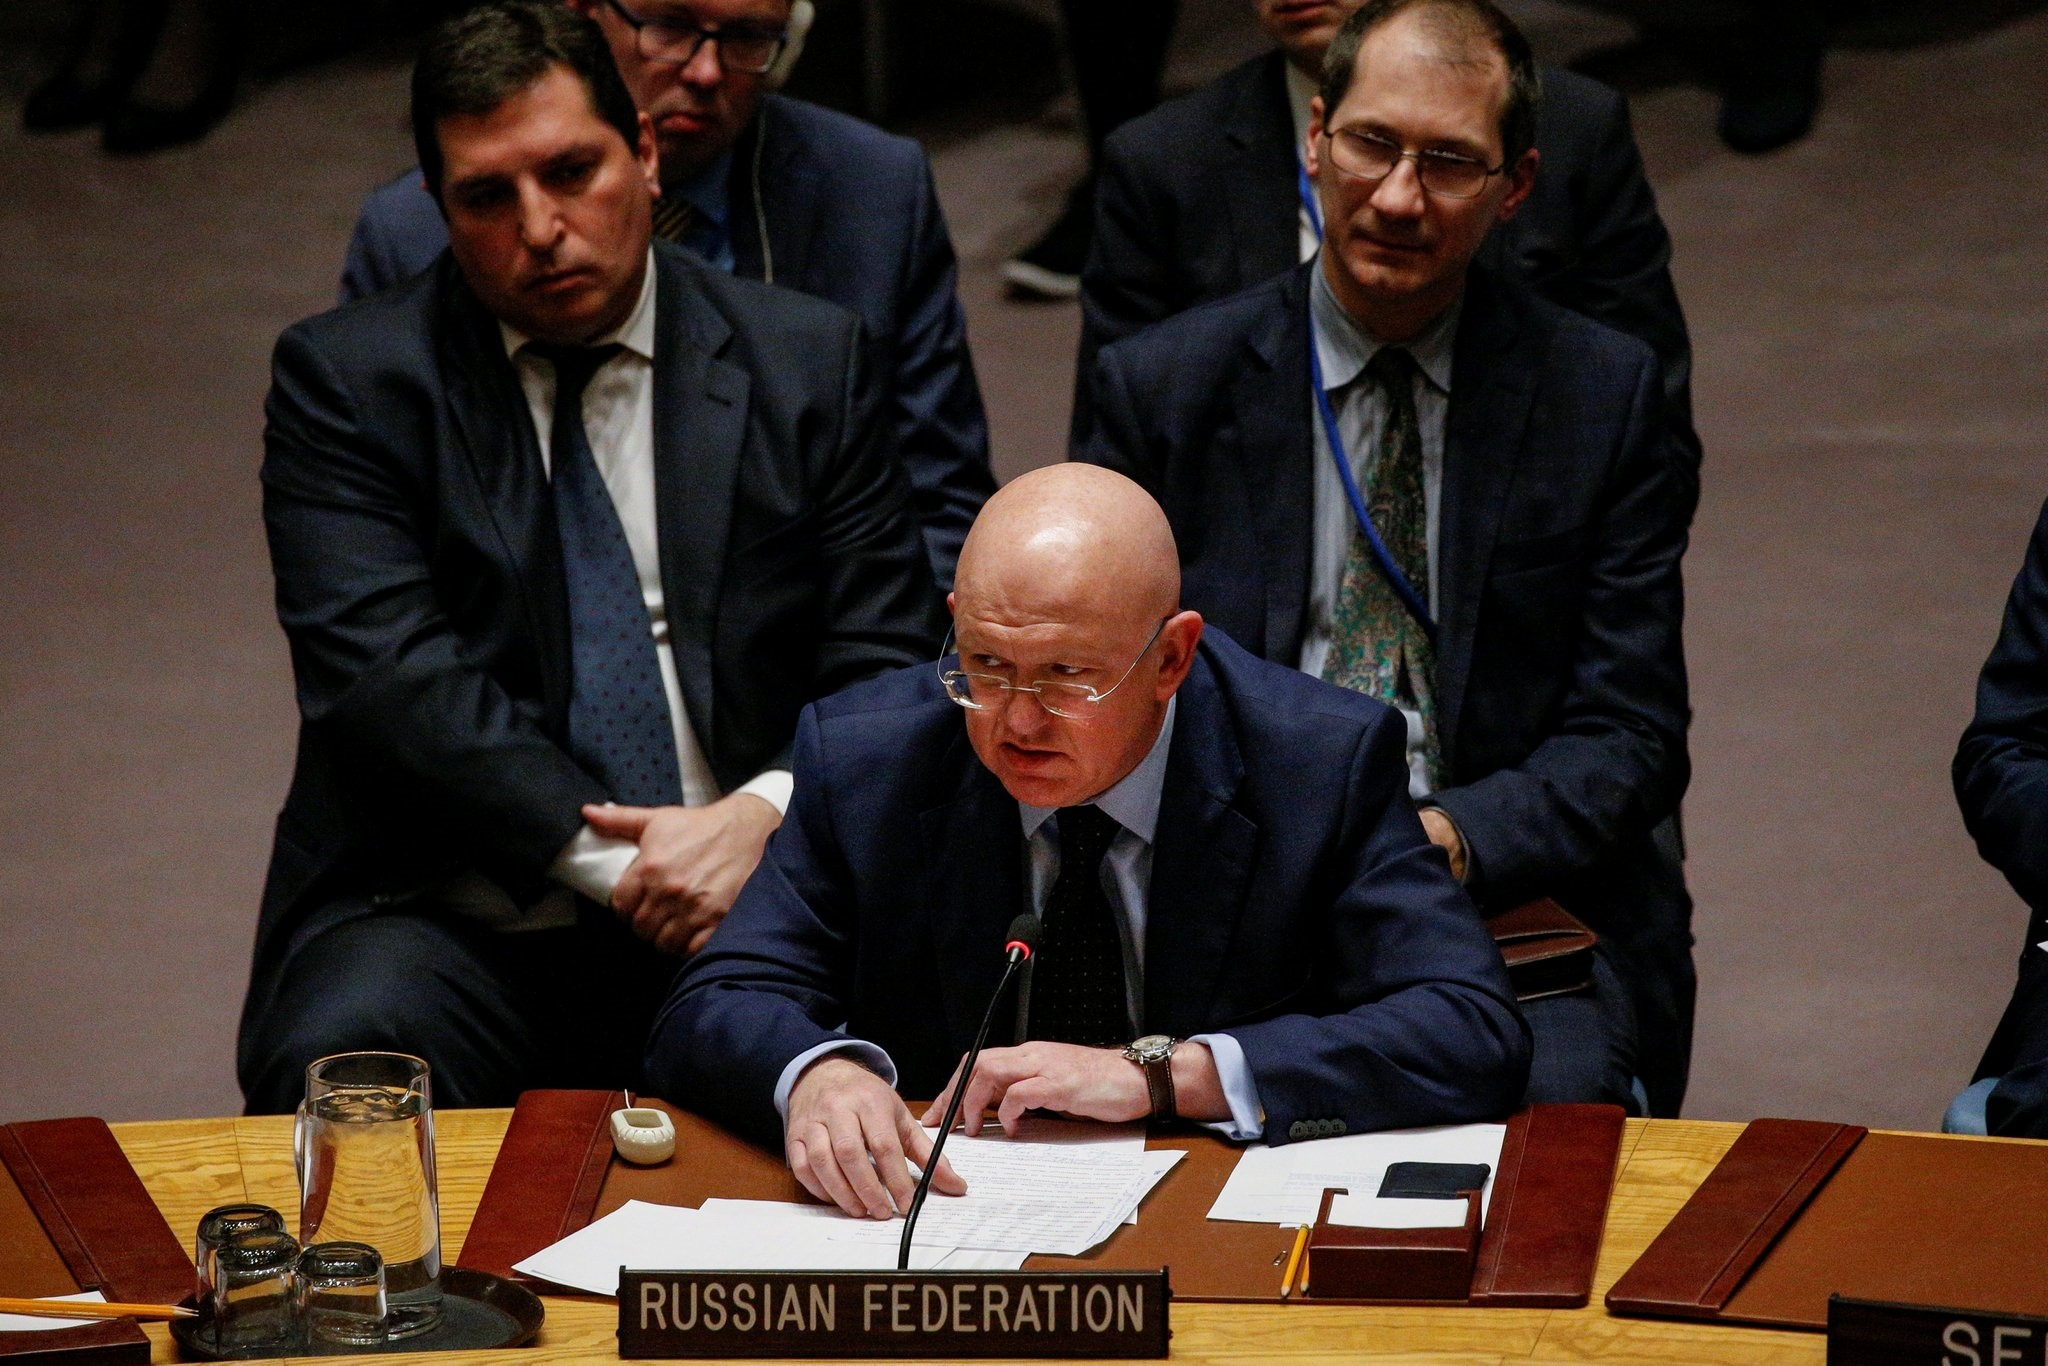 Russian Ambassador to the United Nations Vasily Nebenzya addresses the United Nations Security Council about an international inquiry into chemical weapons attacks in Syria. (REUTERS Photo)